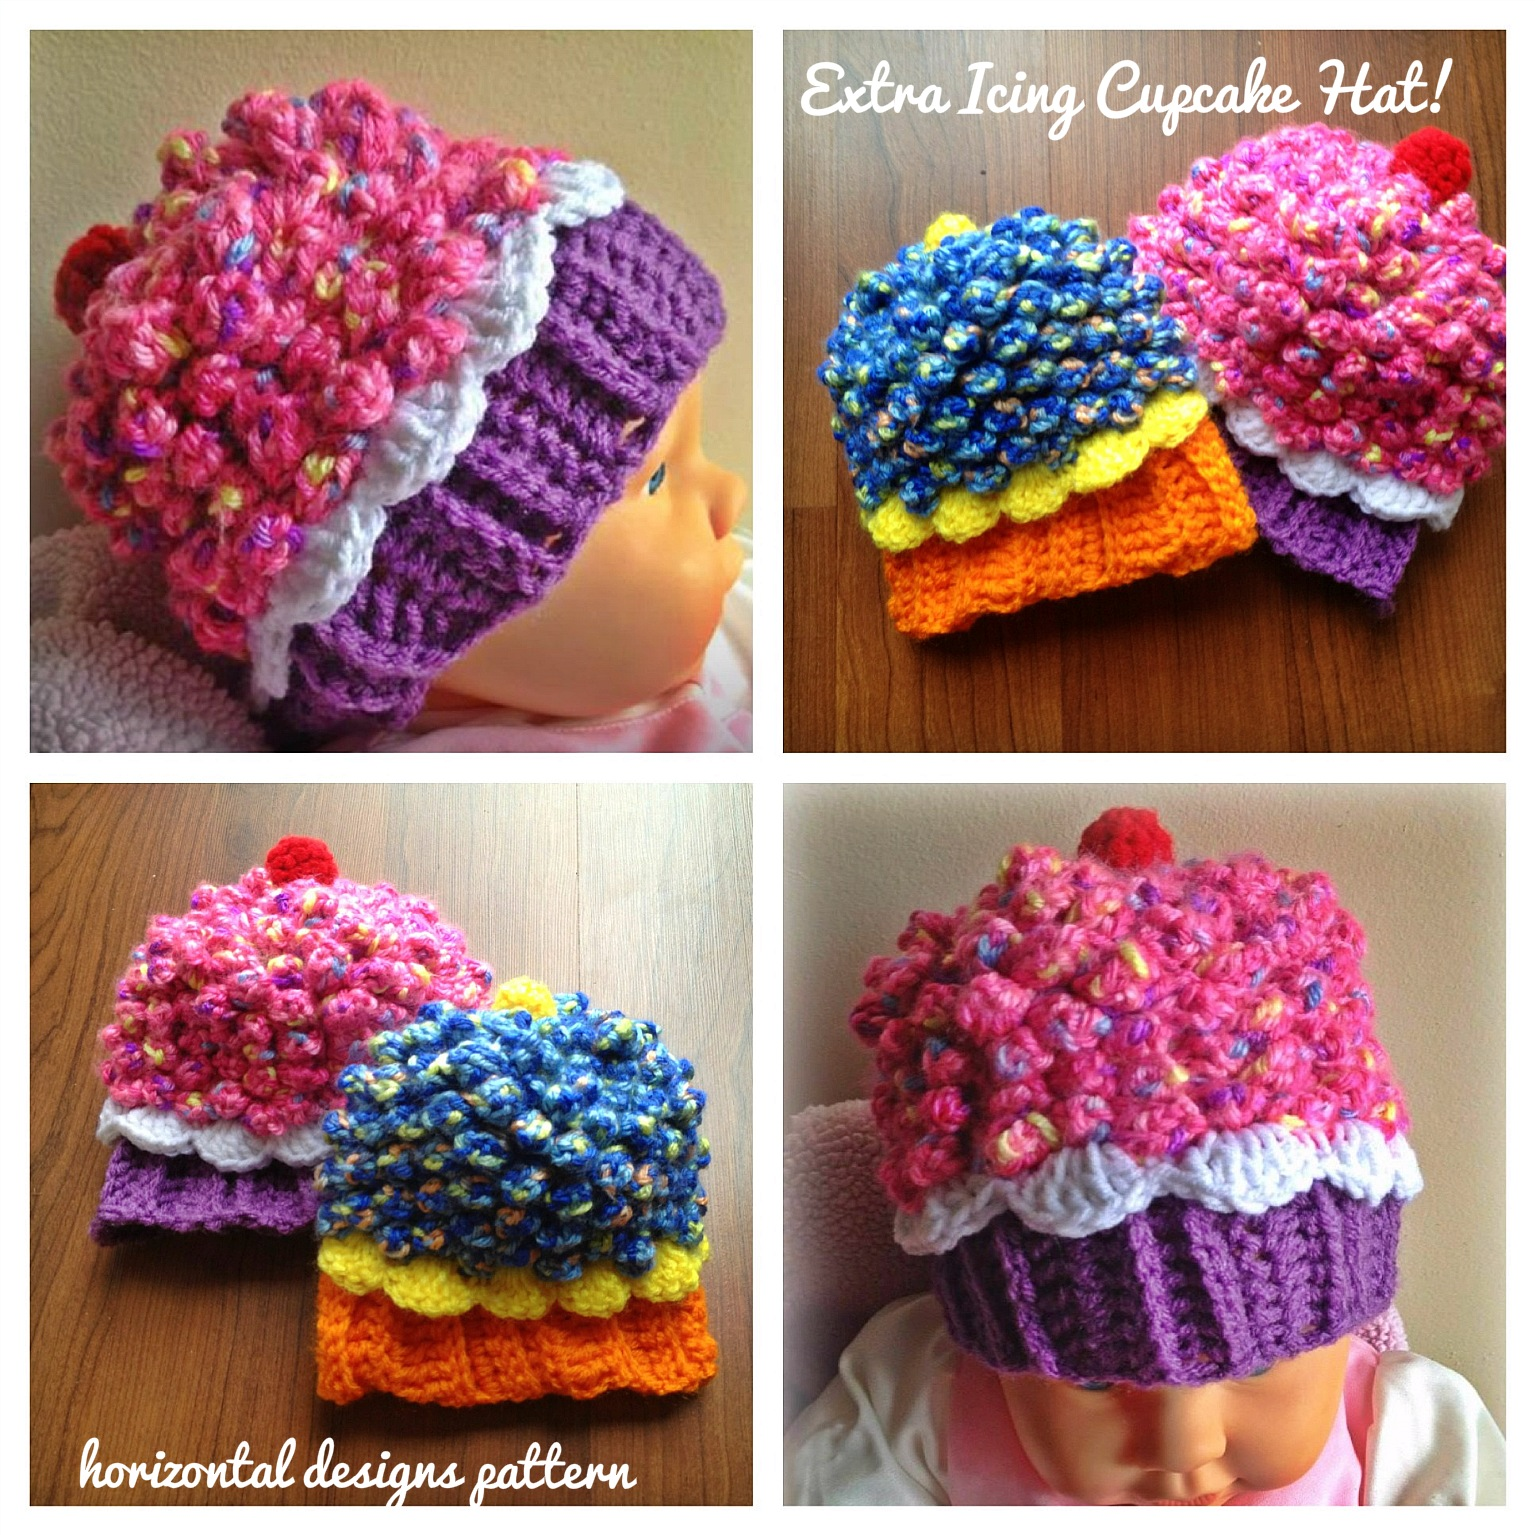 Studio create giveaway cupcake hat extra icing pattern cupcake hat extra icing pattern five babytoddler sizes bankloansurffo Images